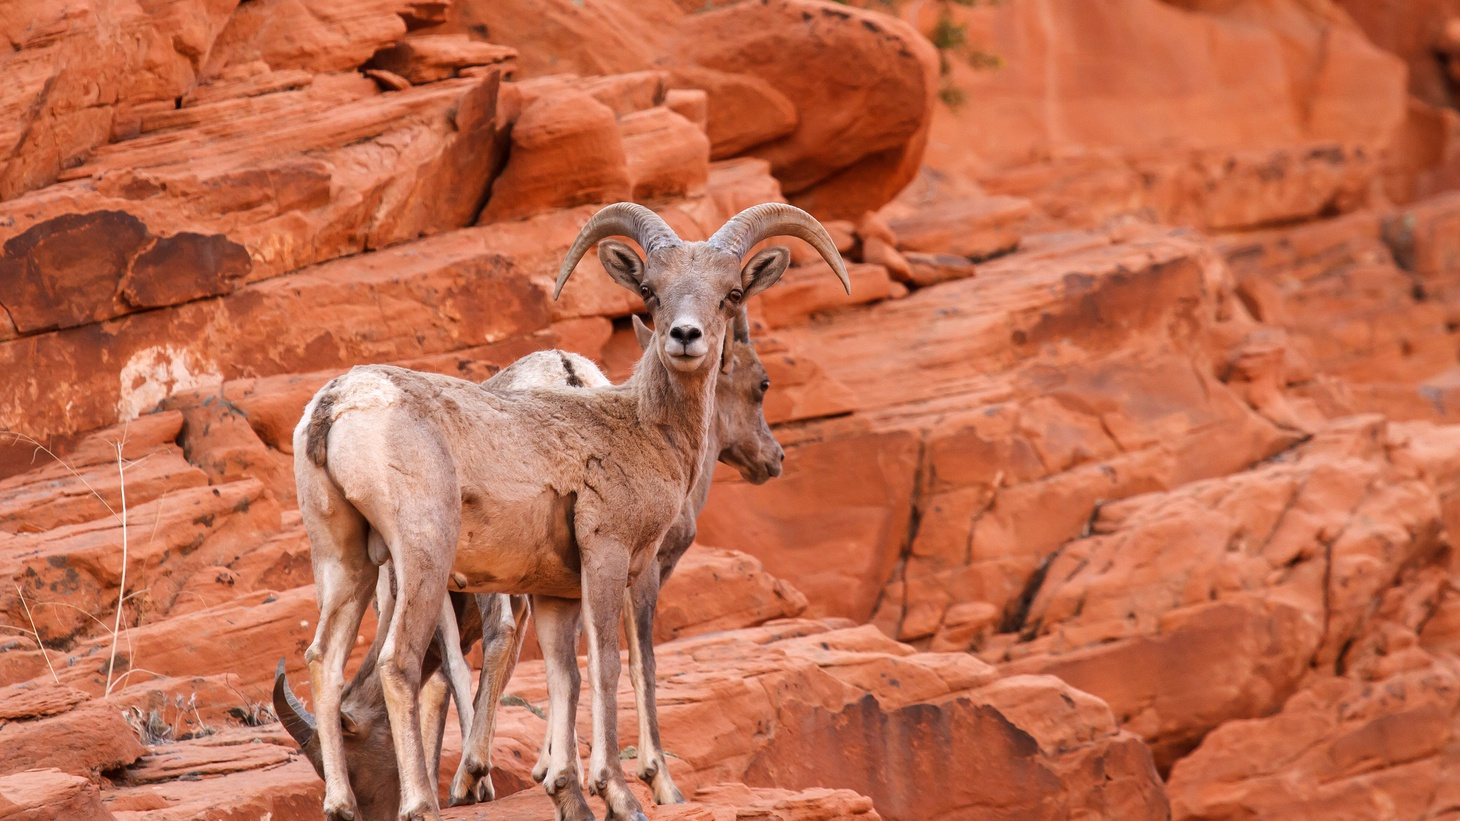 Bighorn sheep are spotted on red rocks in the Mojave Desert.